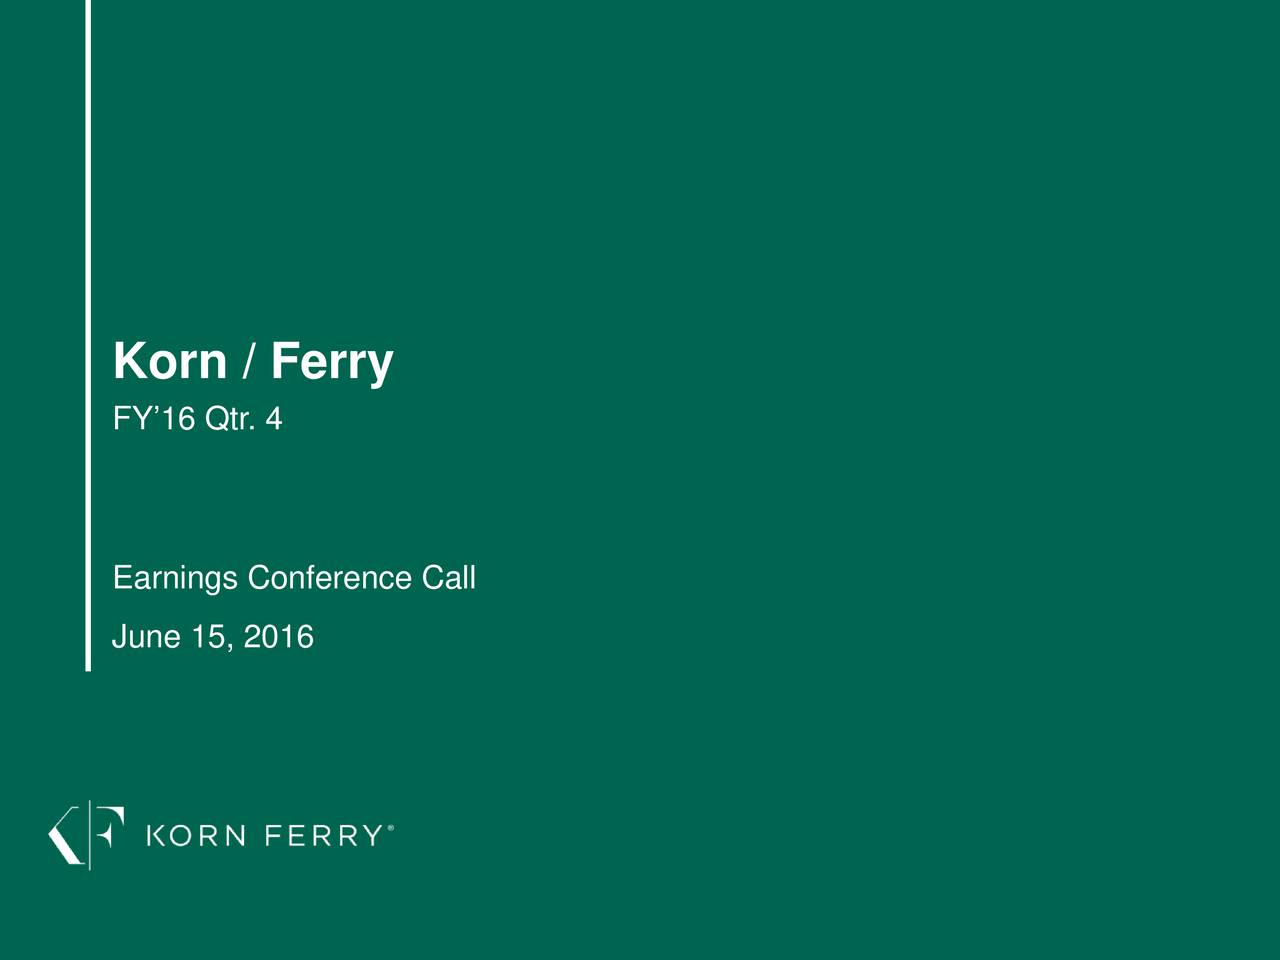 FY16 Qtr. 4 Earnings Conference Call June 15, 2016